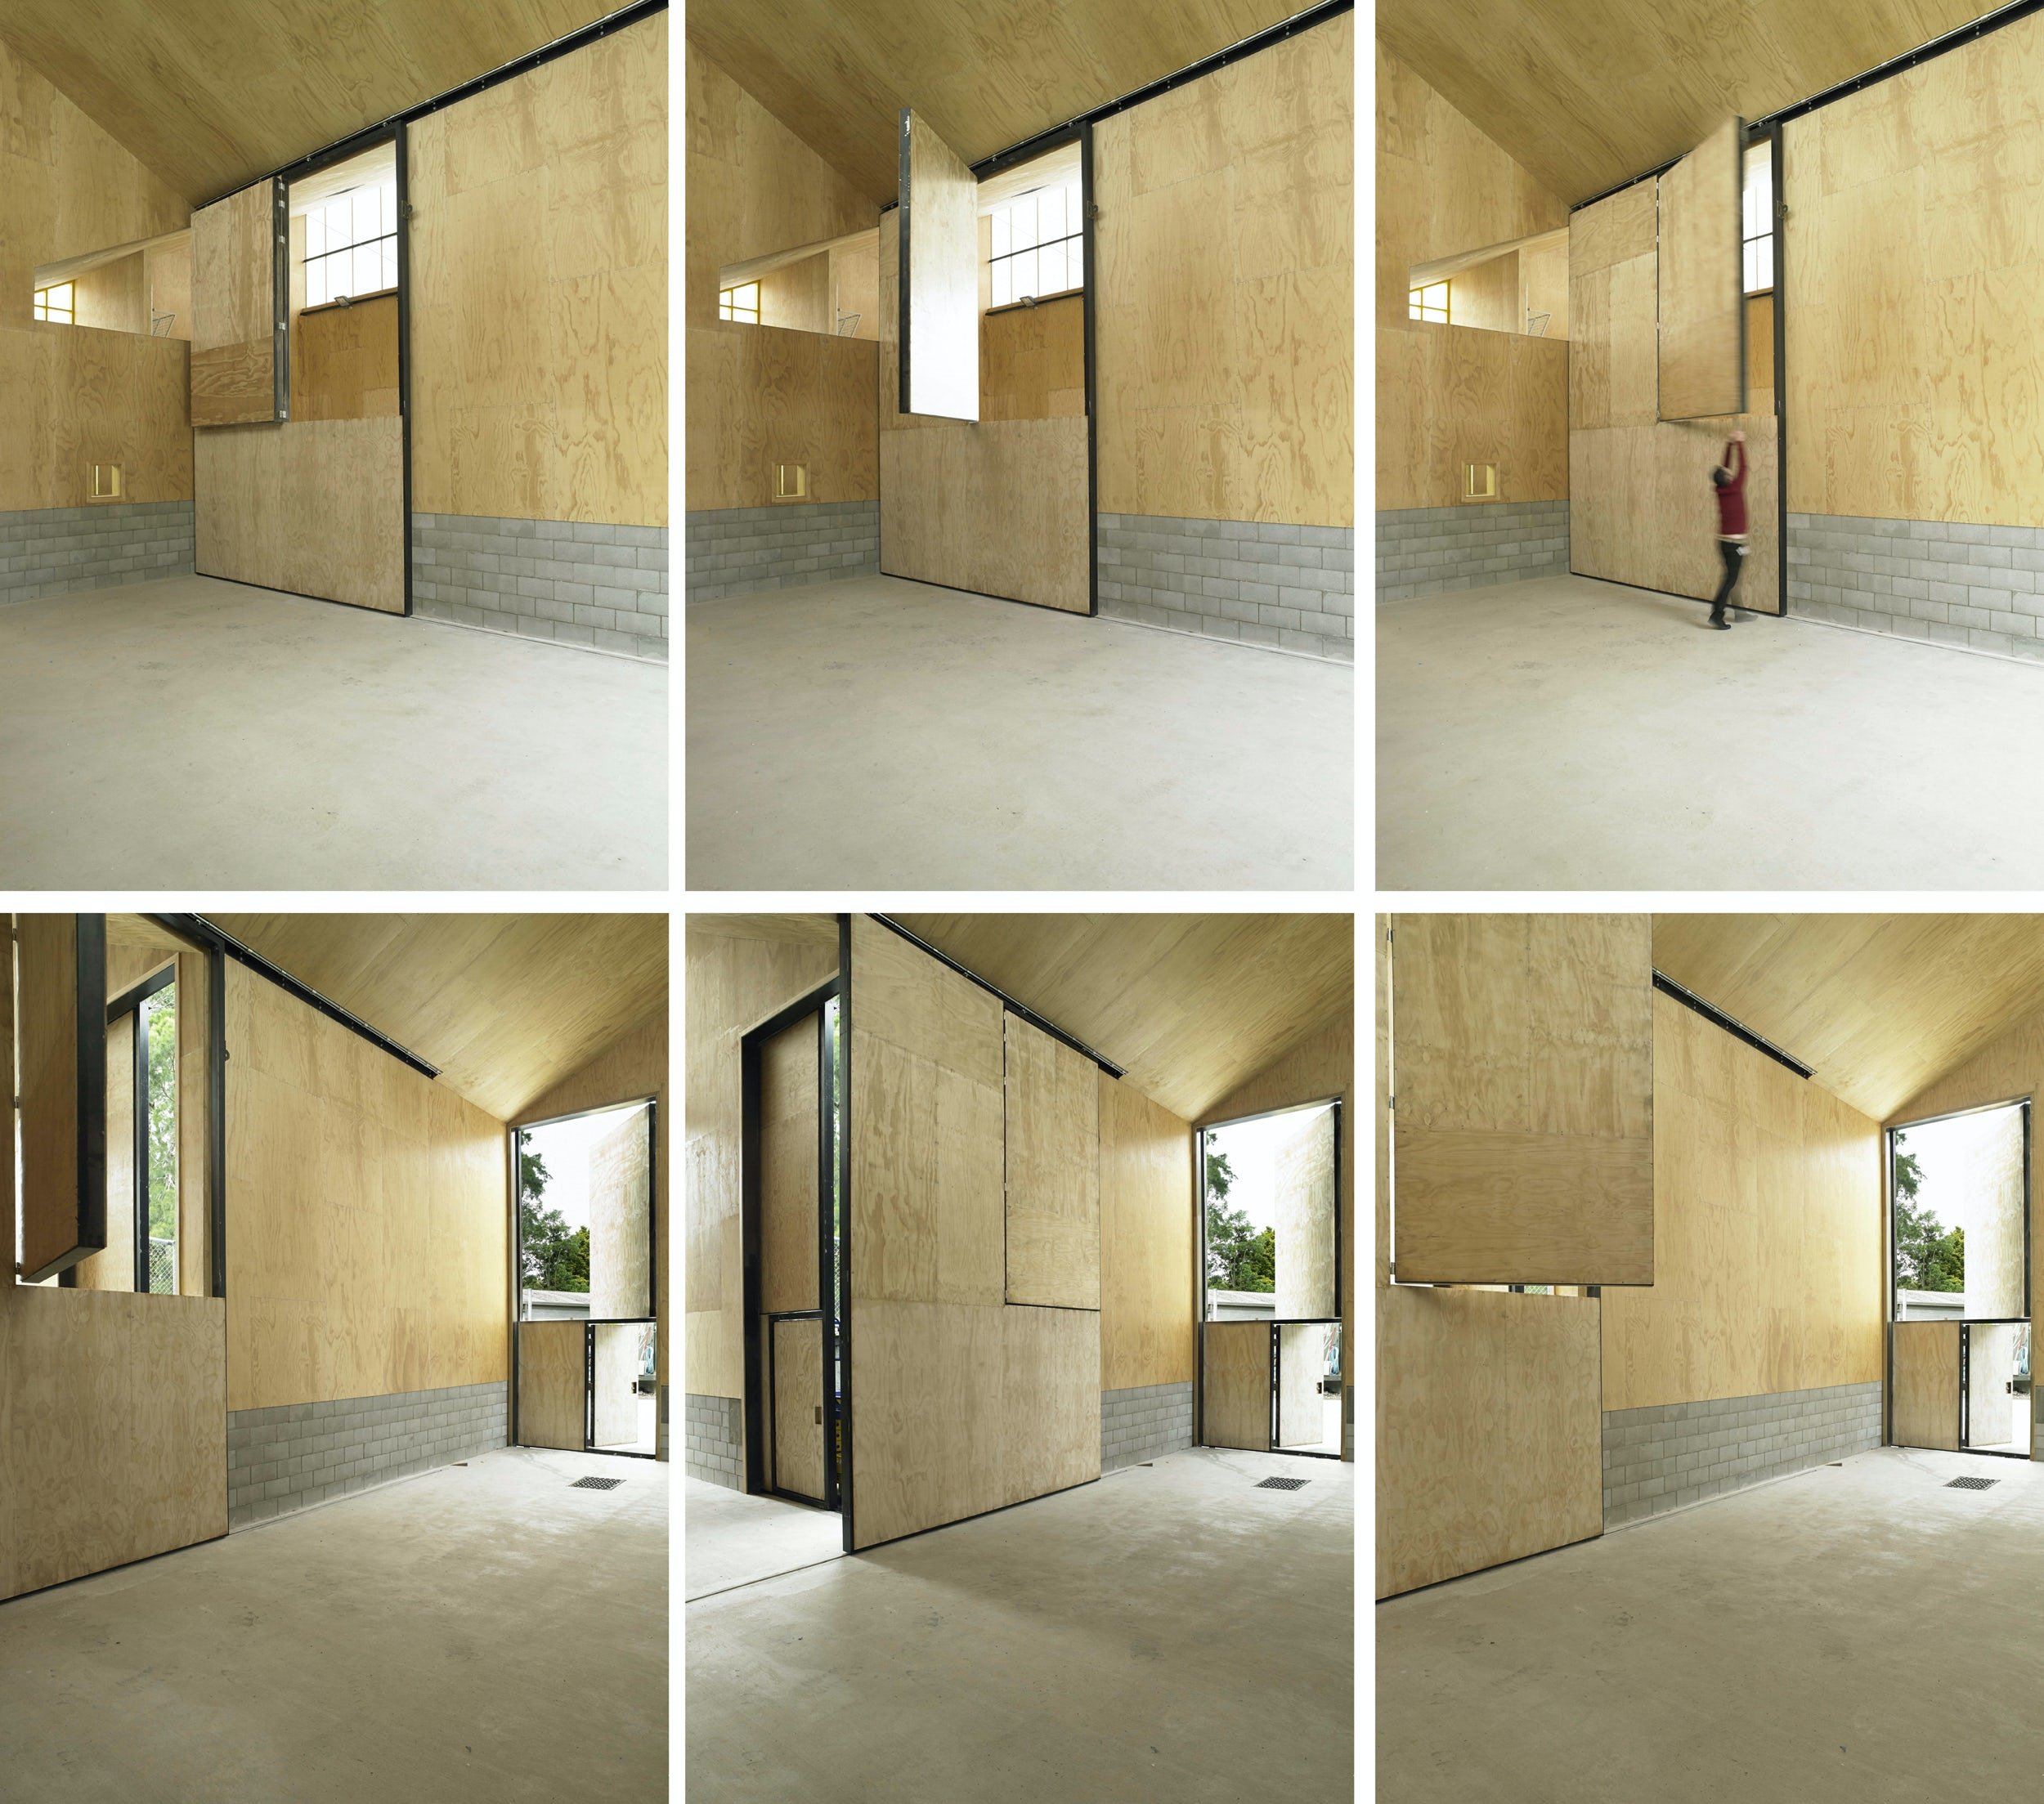 1483 #644923 Giraffe House Architizer save image Main Entrance Doors For Houses 43571680